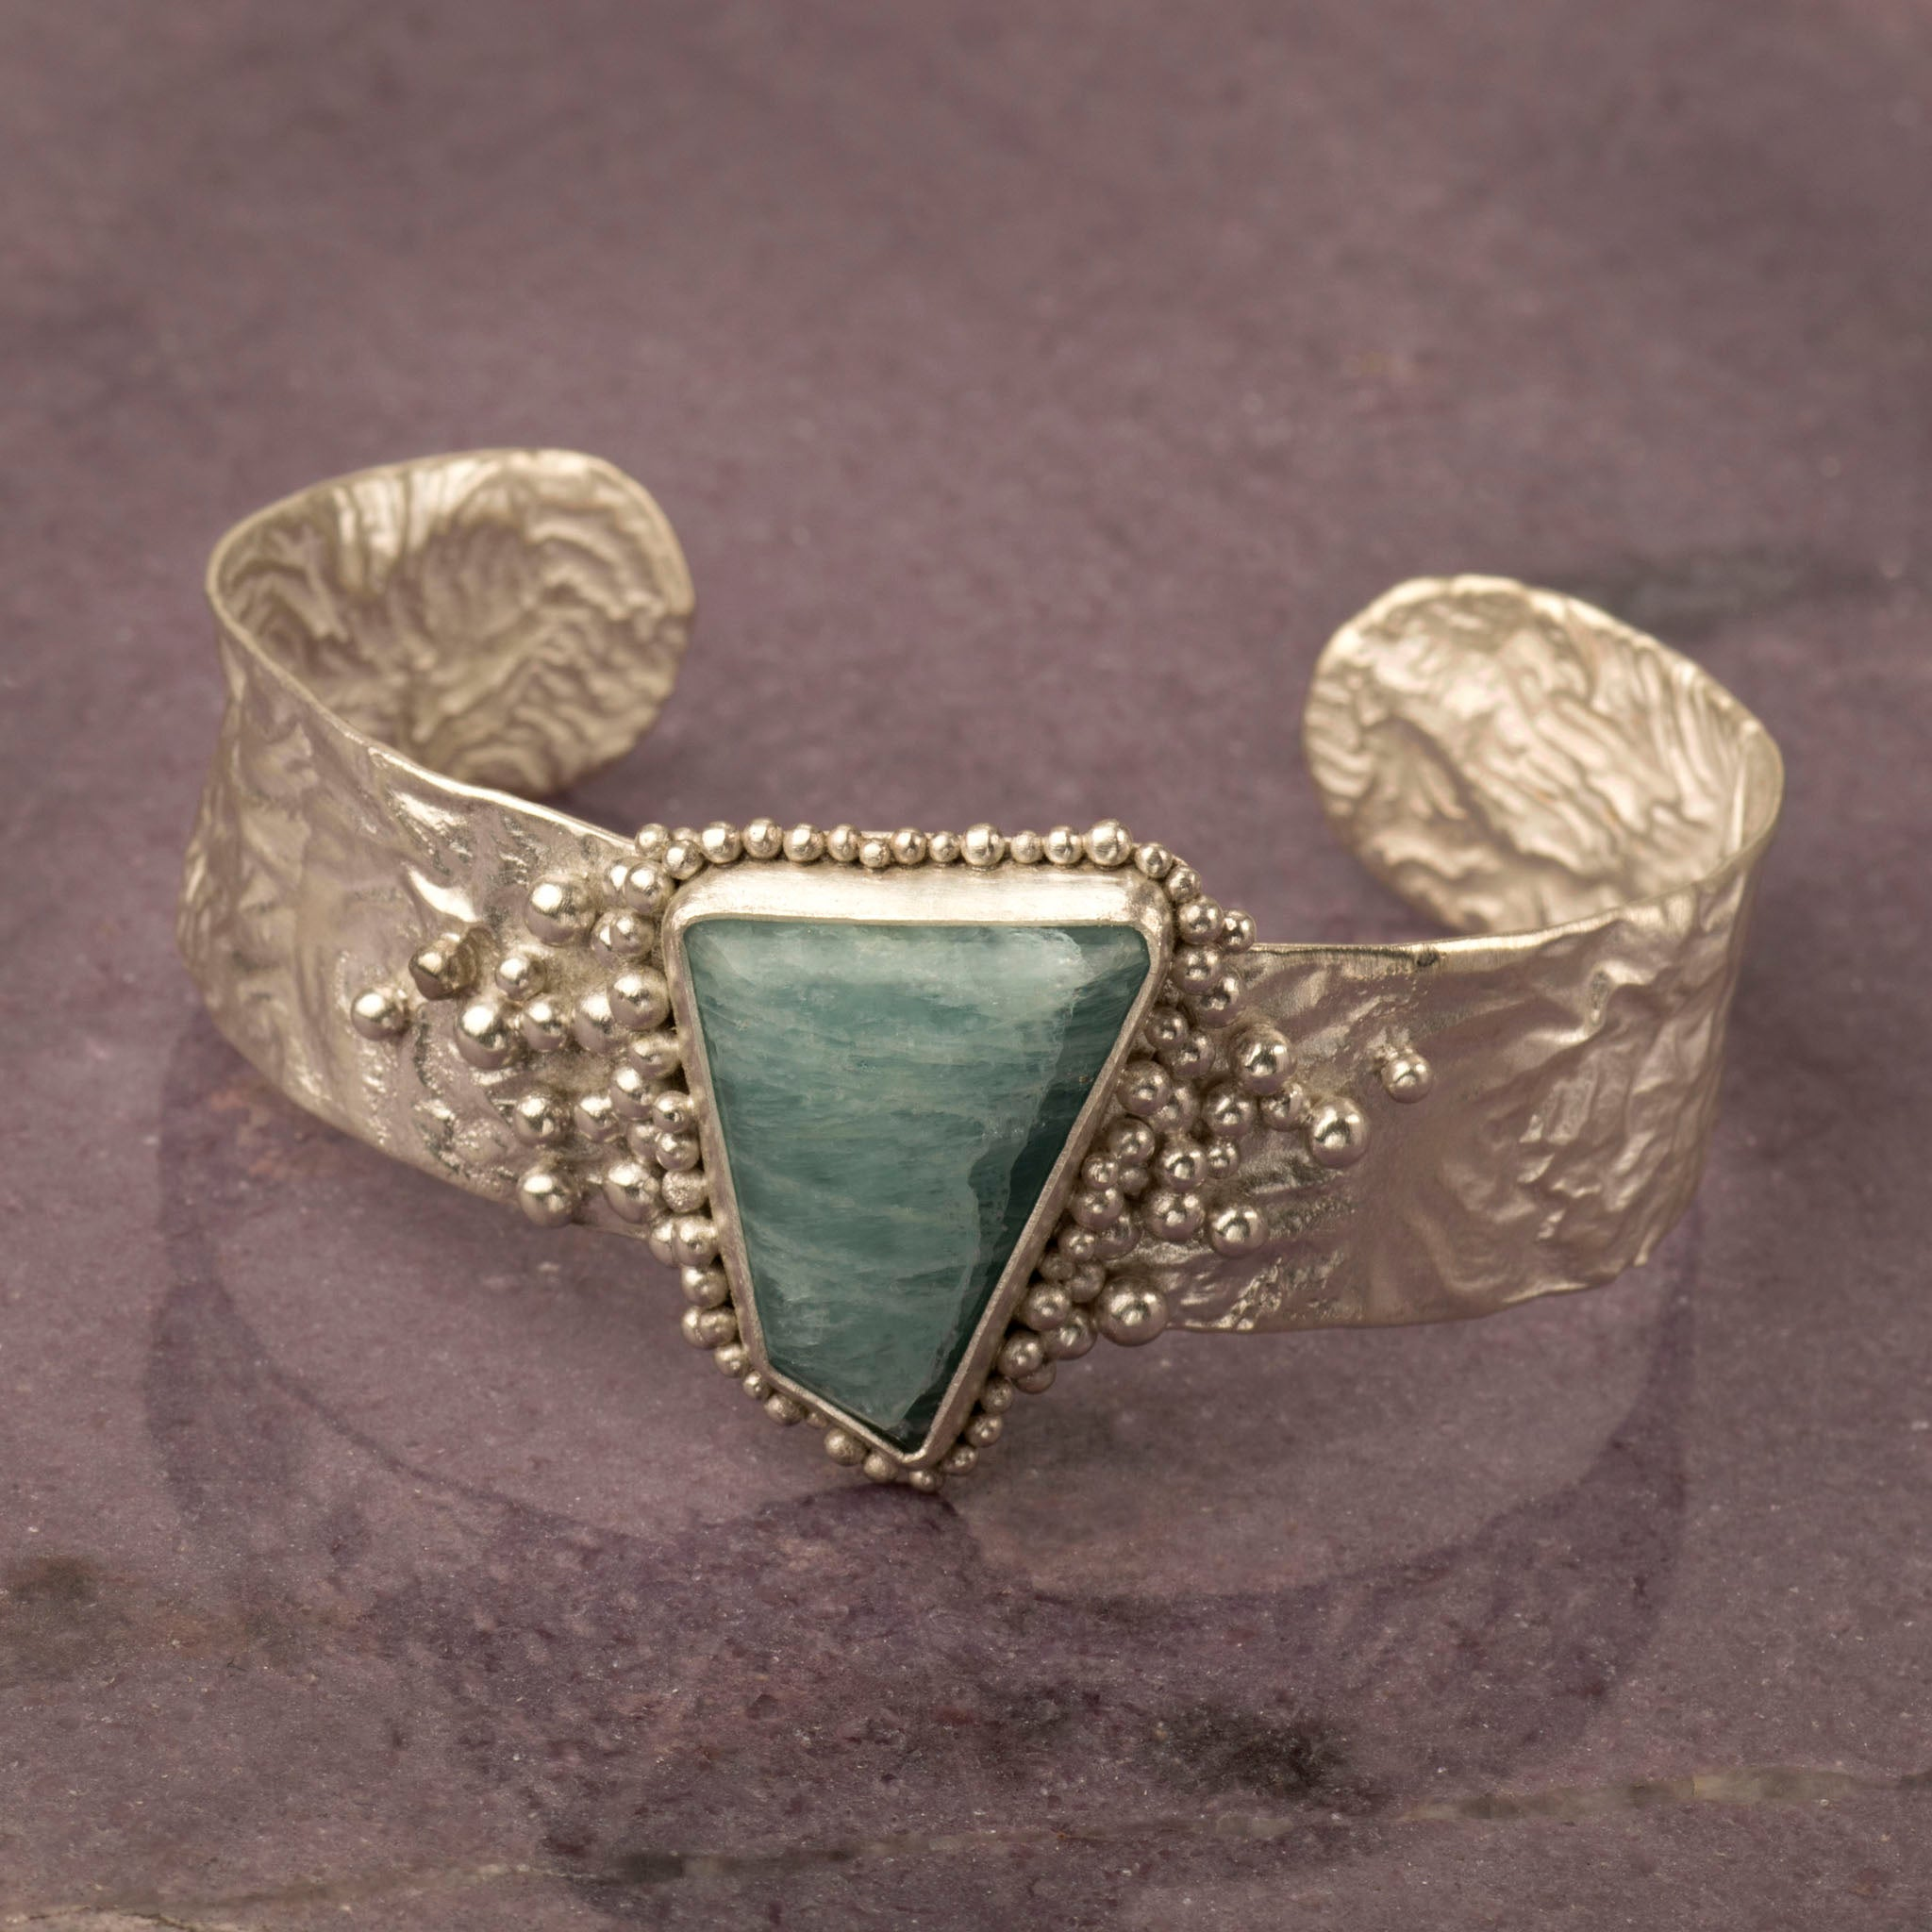 Handcrafted Reticulated Cuff